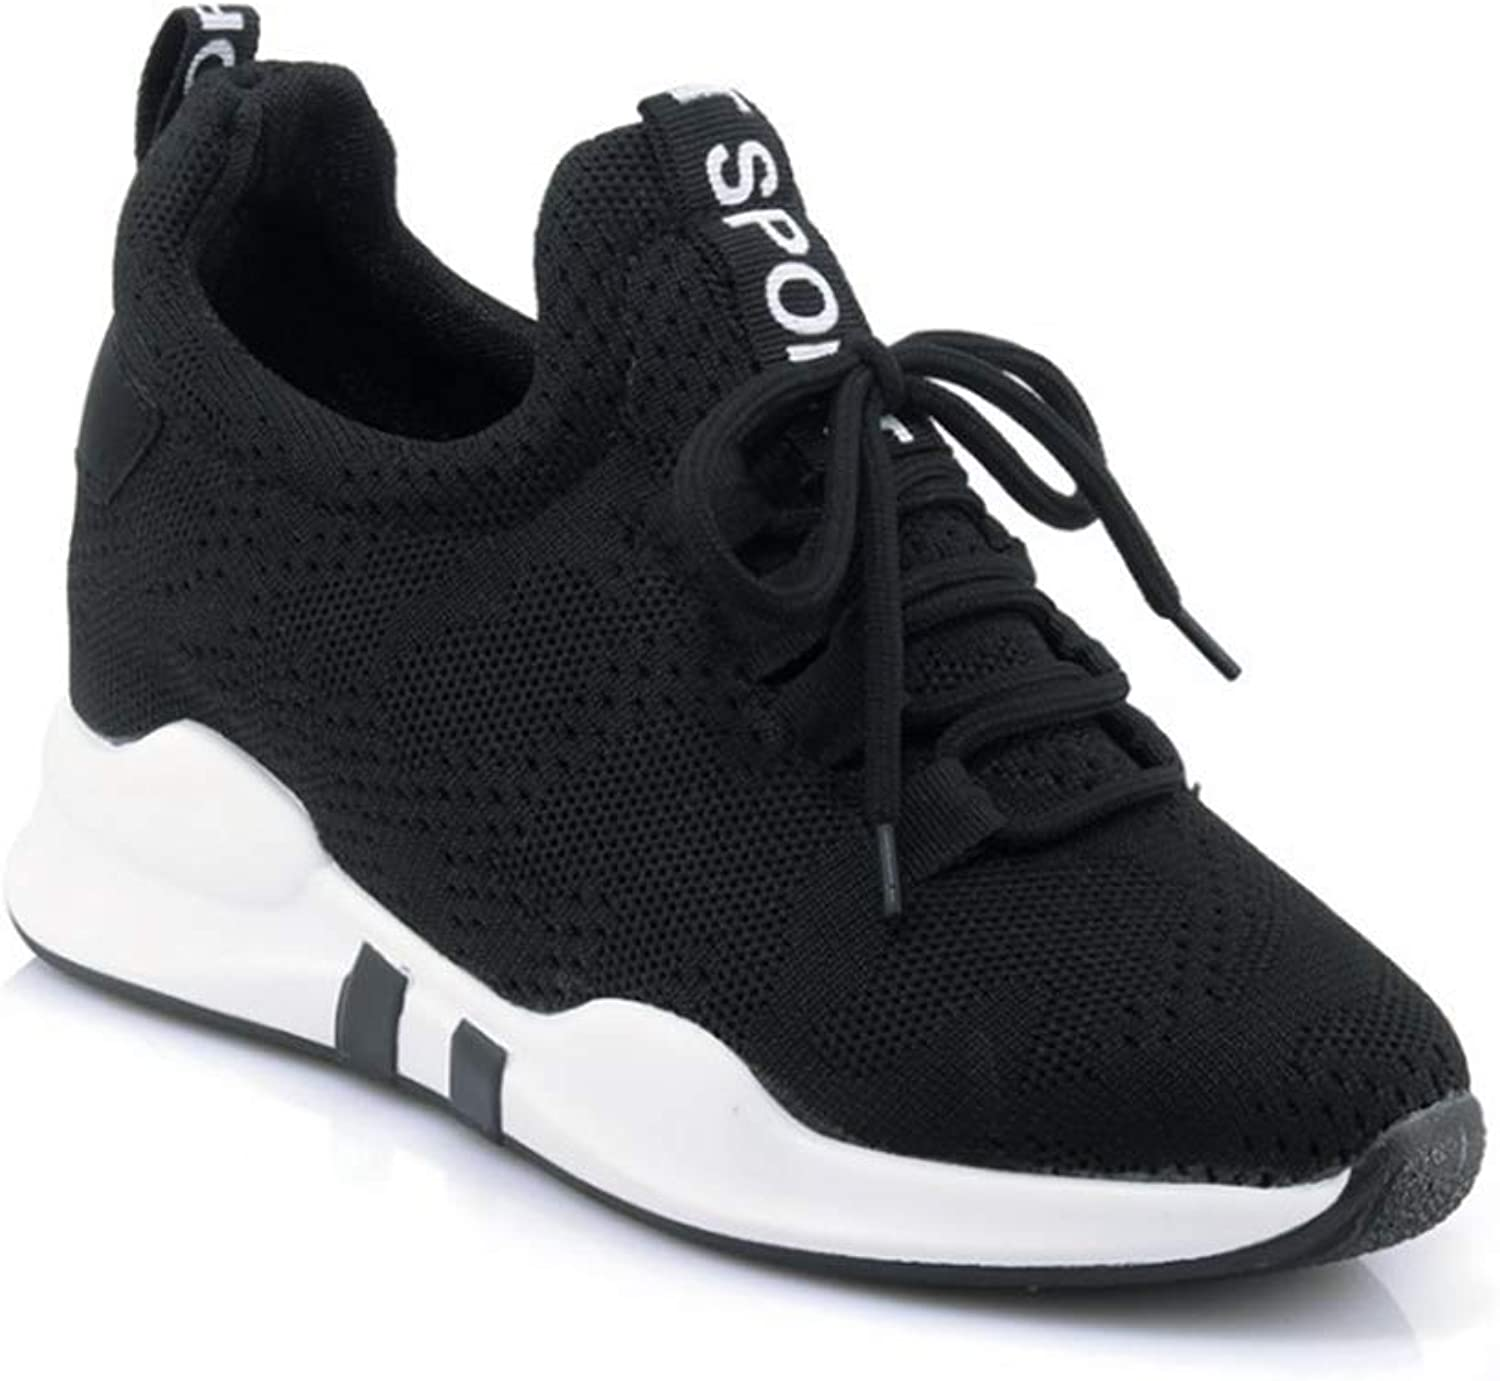 Bonrise Women Running Sneakers Comfort Slip On Wedges shoes Breathable Athletic Casual Mesh Walking shoes